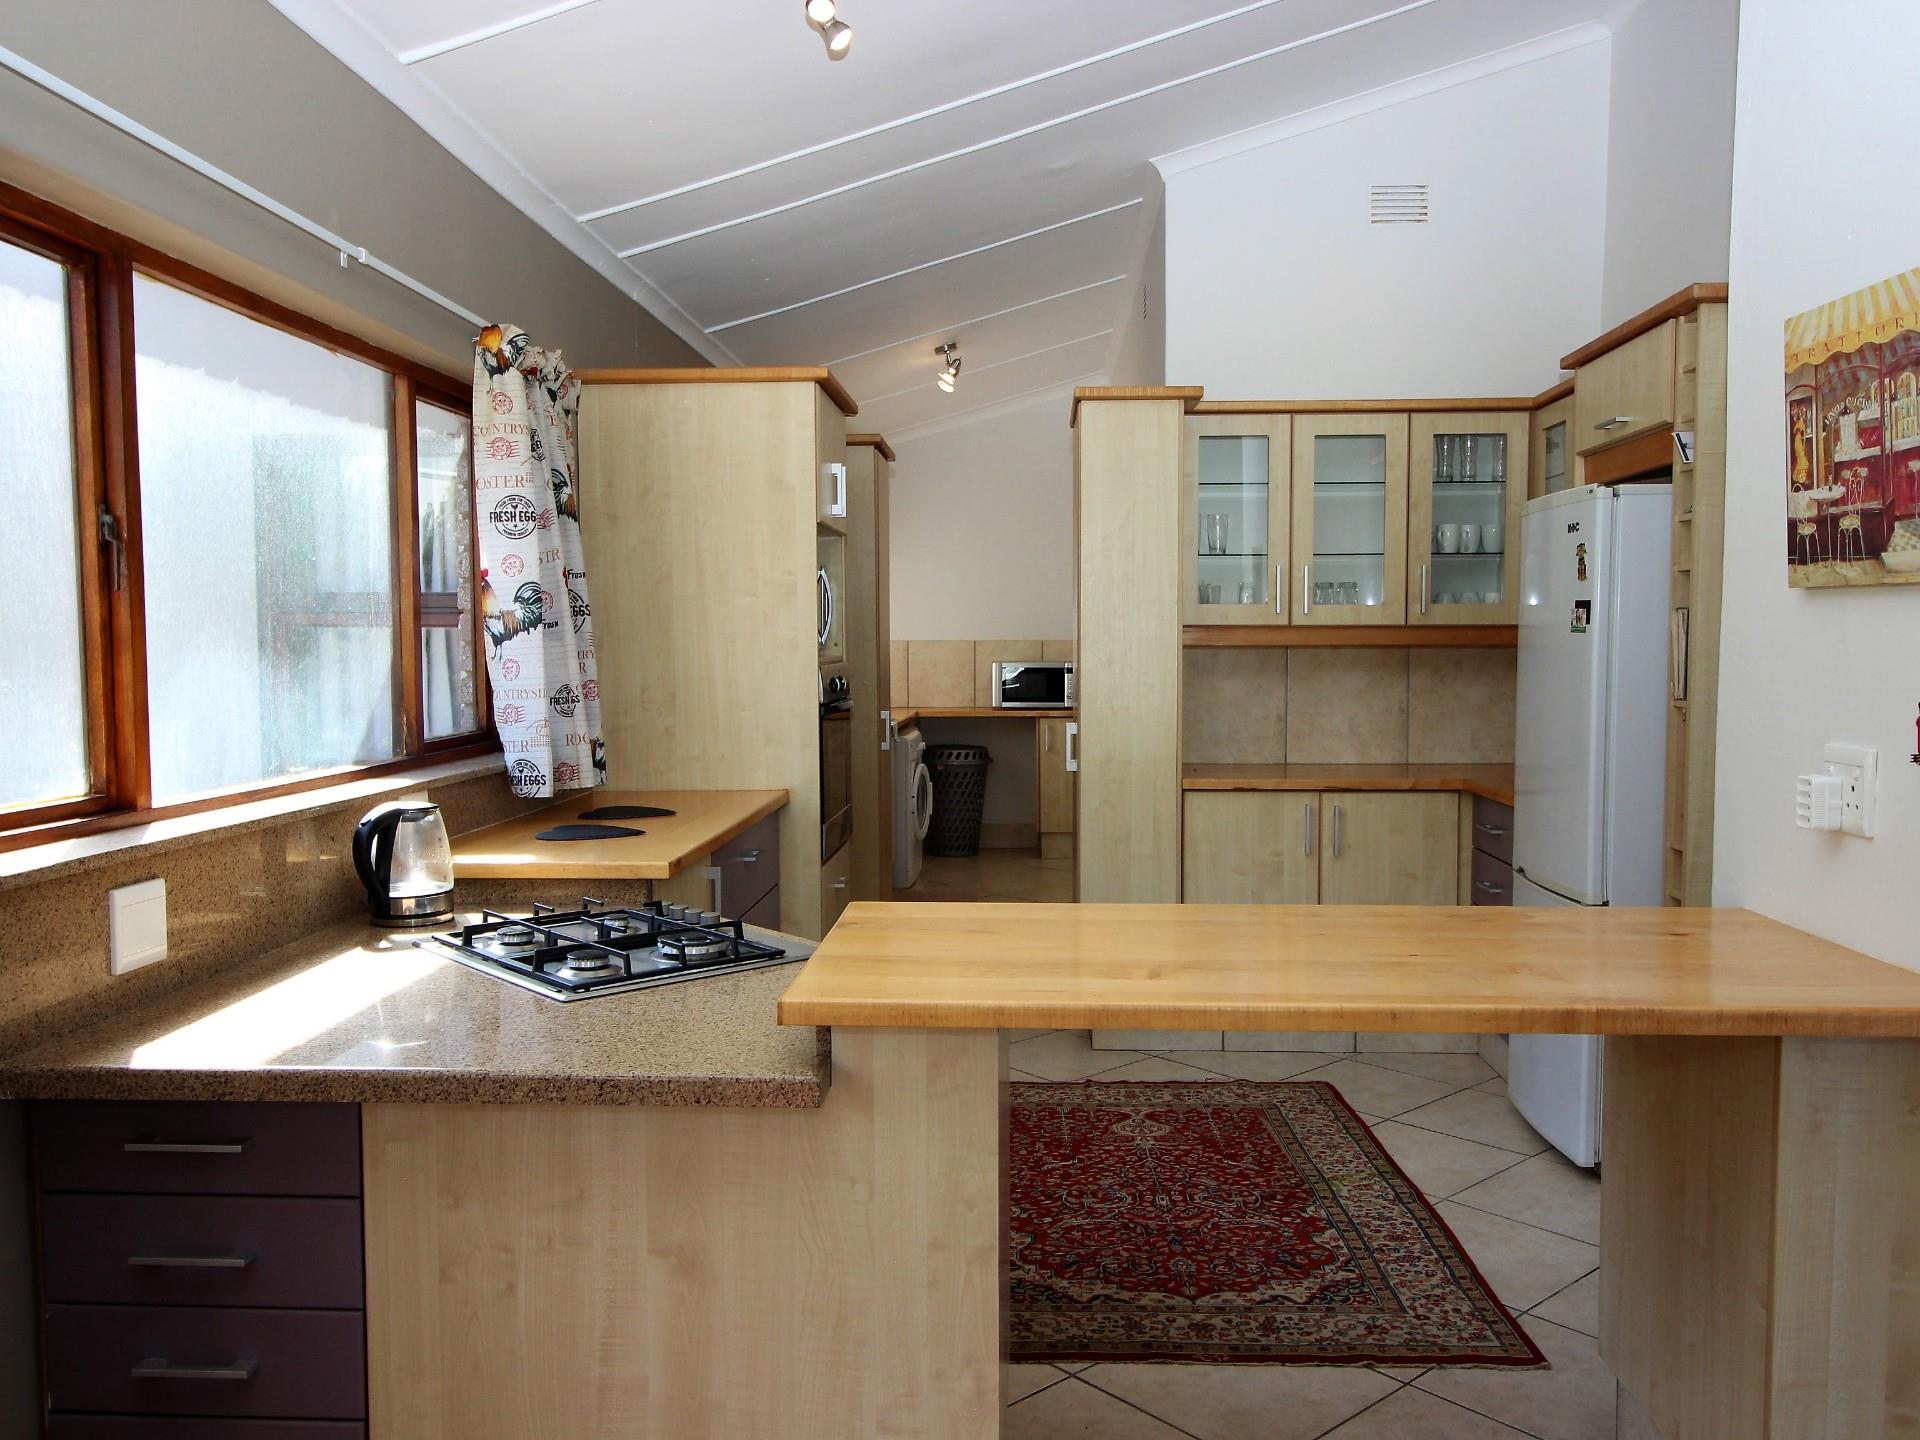 6 Bedroom House For Sale in Brenton On Sea